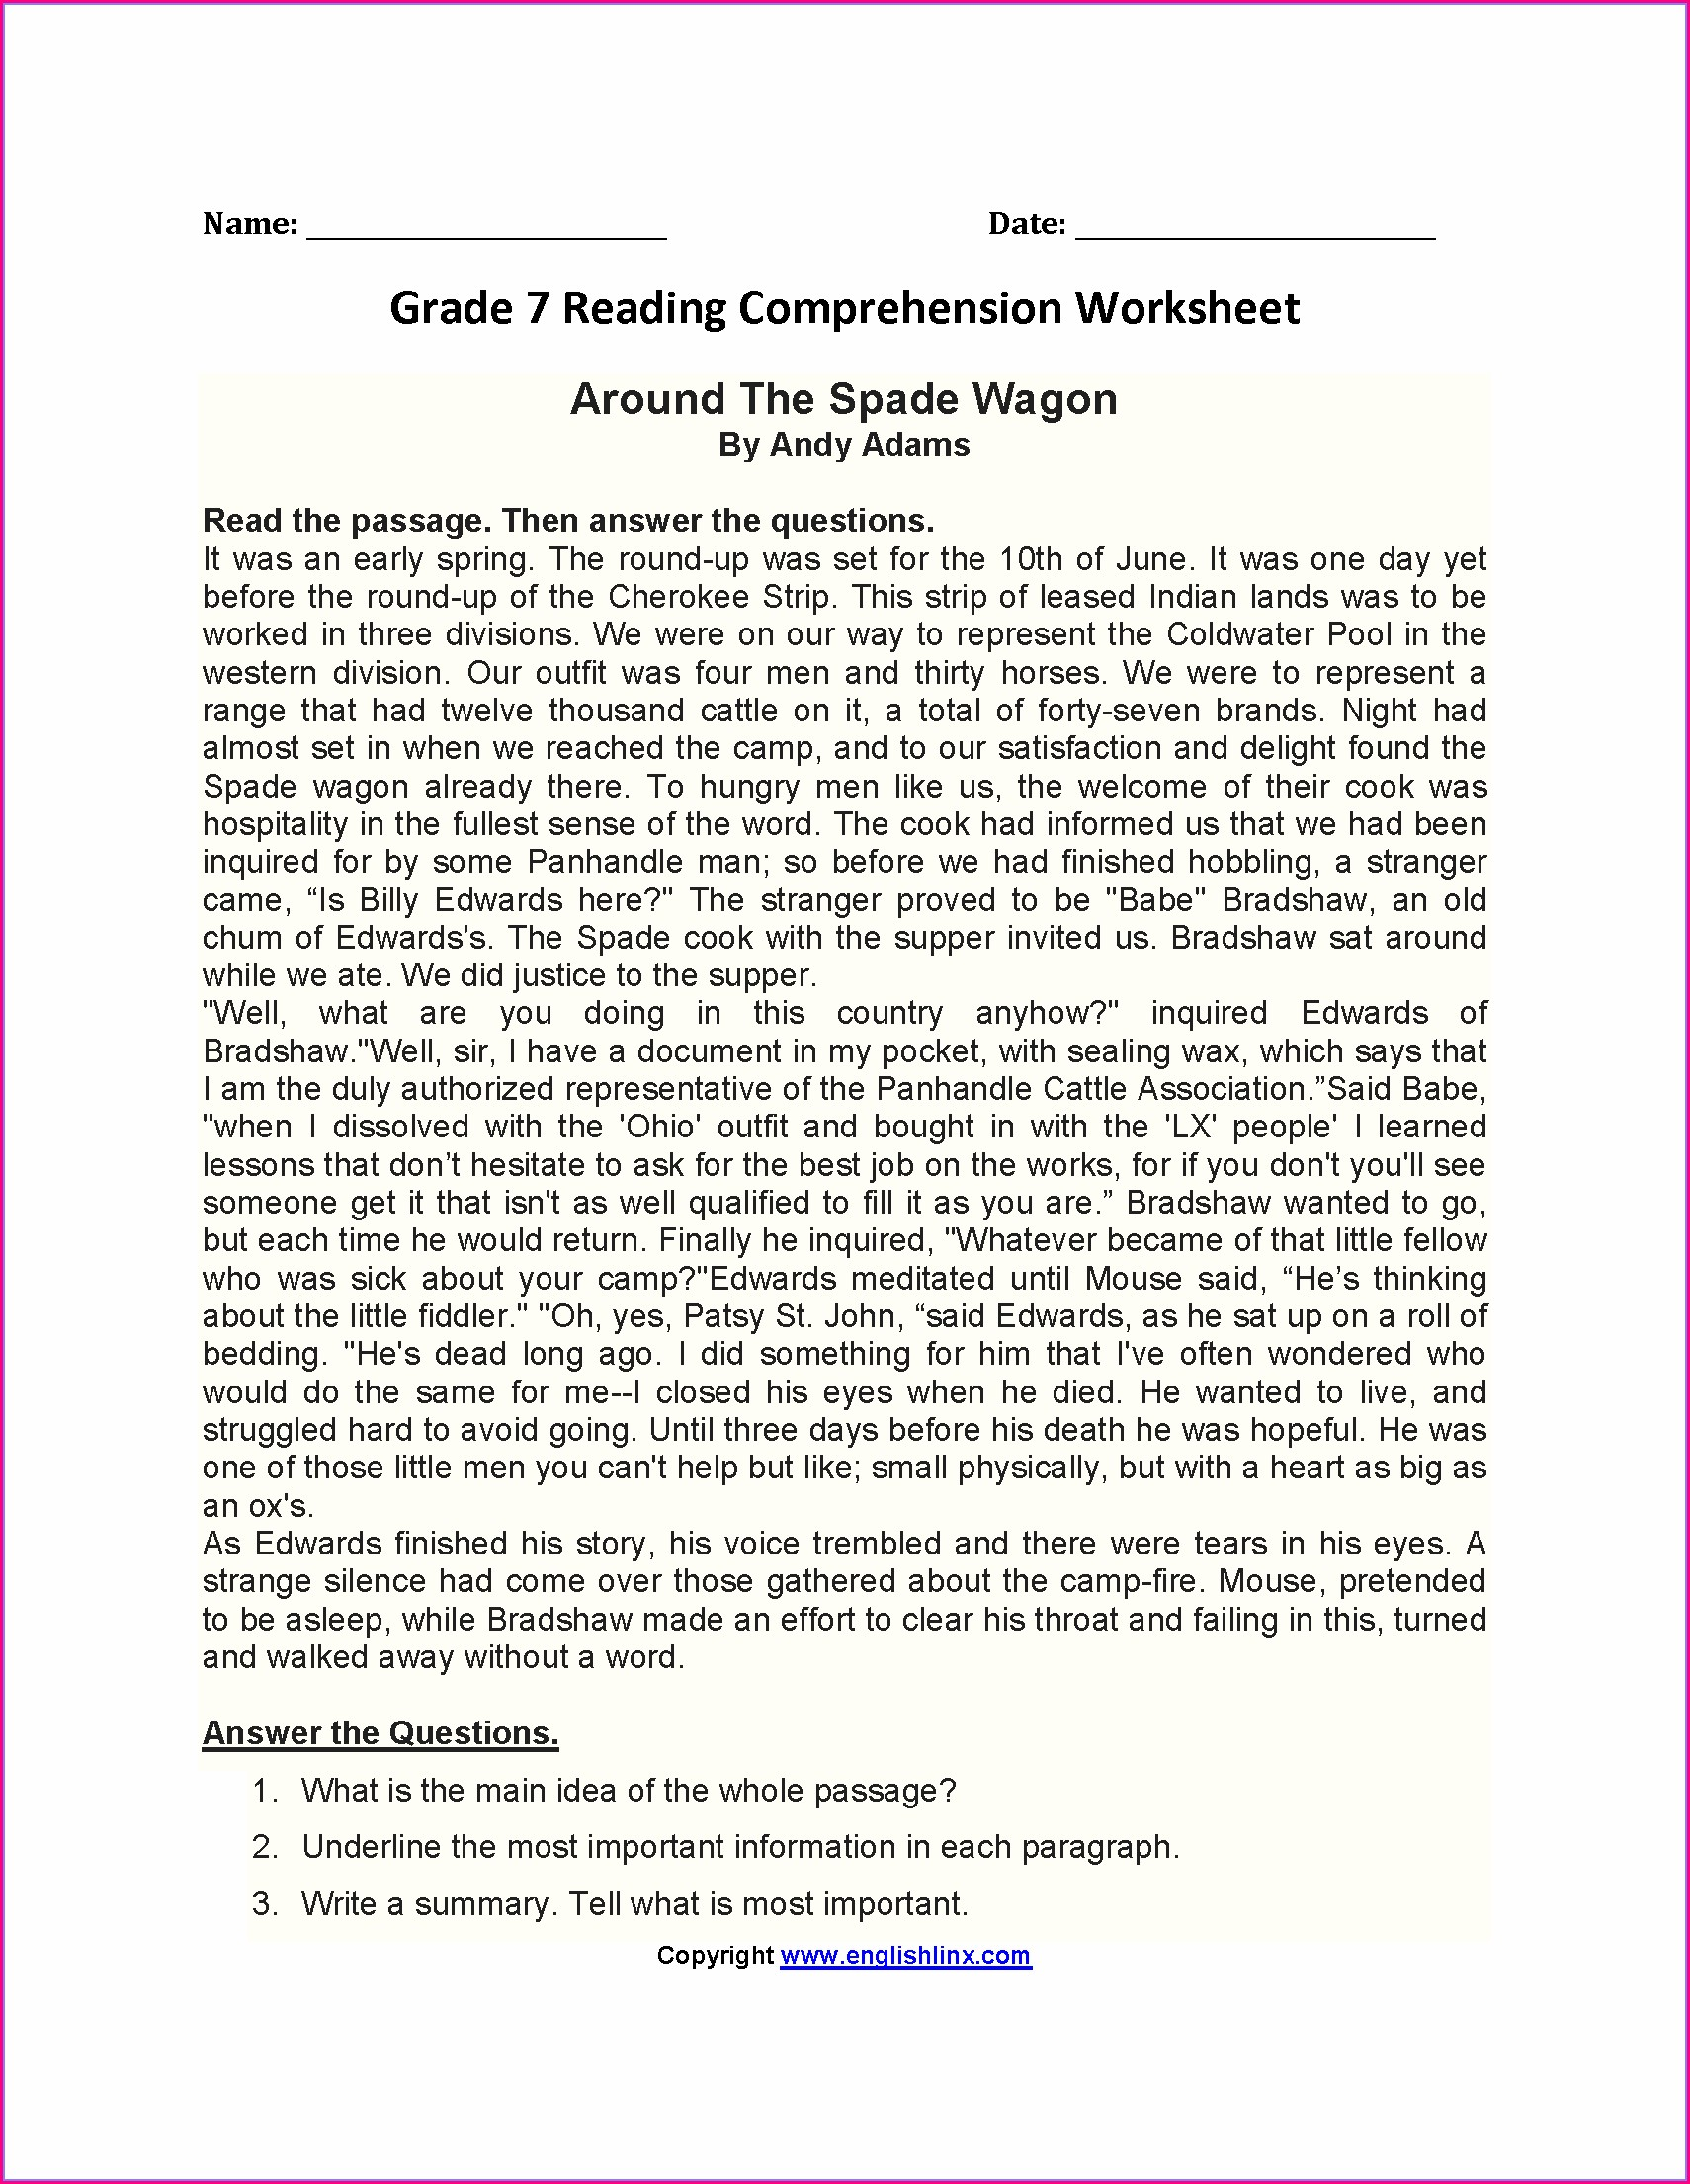 7th Grade English Worksheets For Grade 7 Comprehension